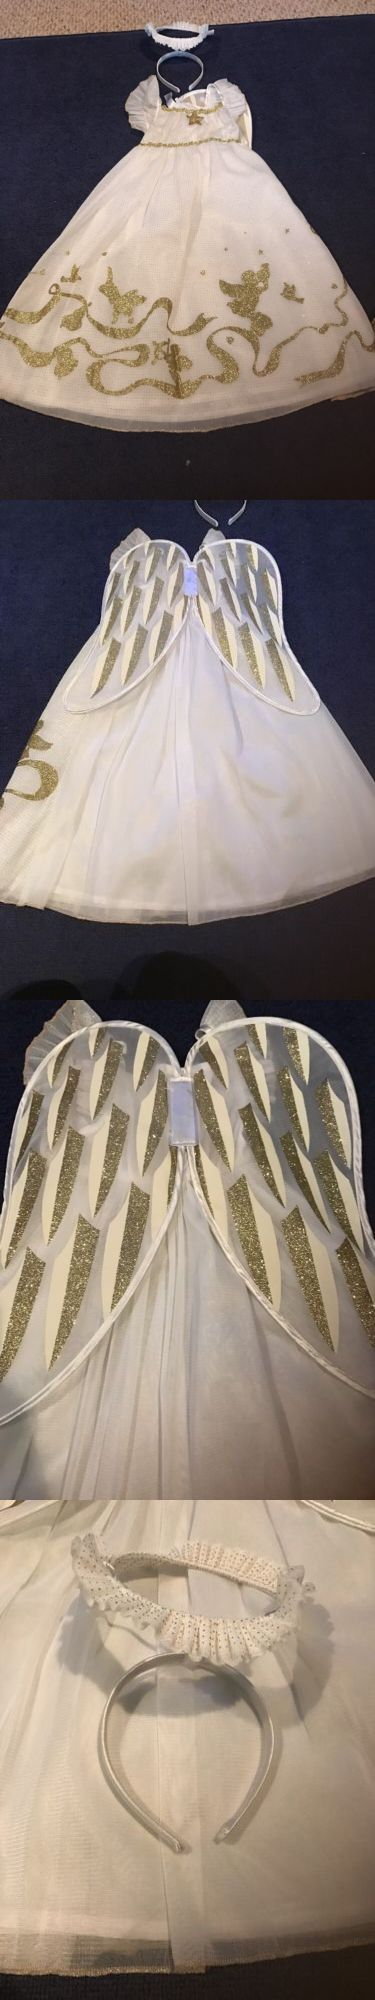 Kids Costumes: Toddler Girls Angel Costume Christmas 3/4 BUY IT NOW ONLY: $35.0